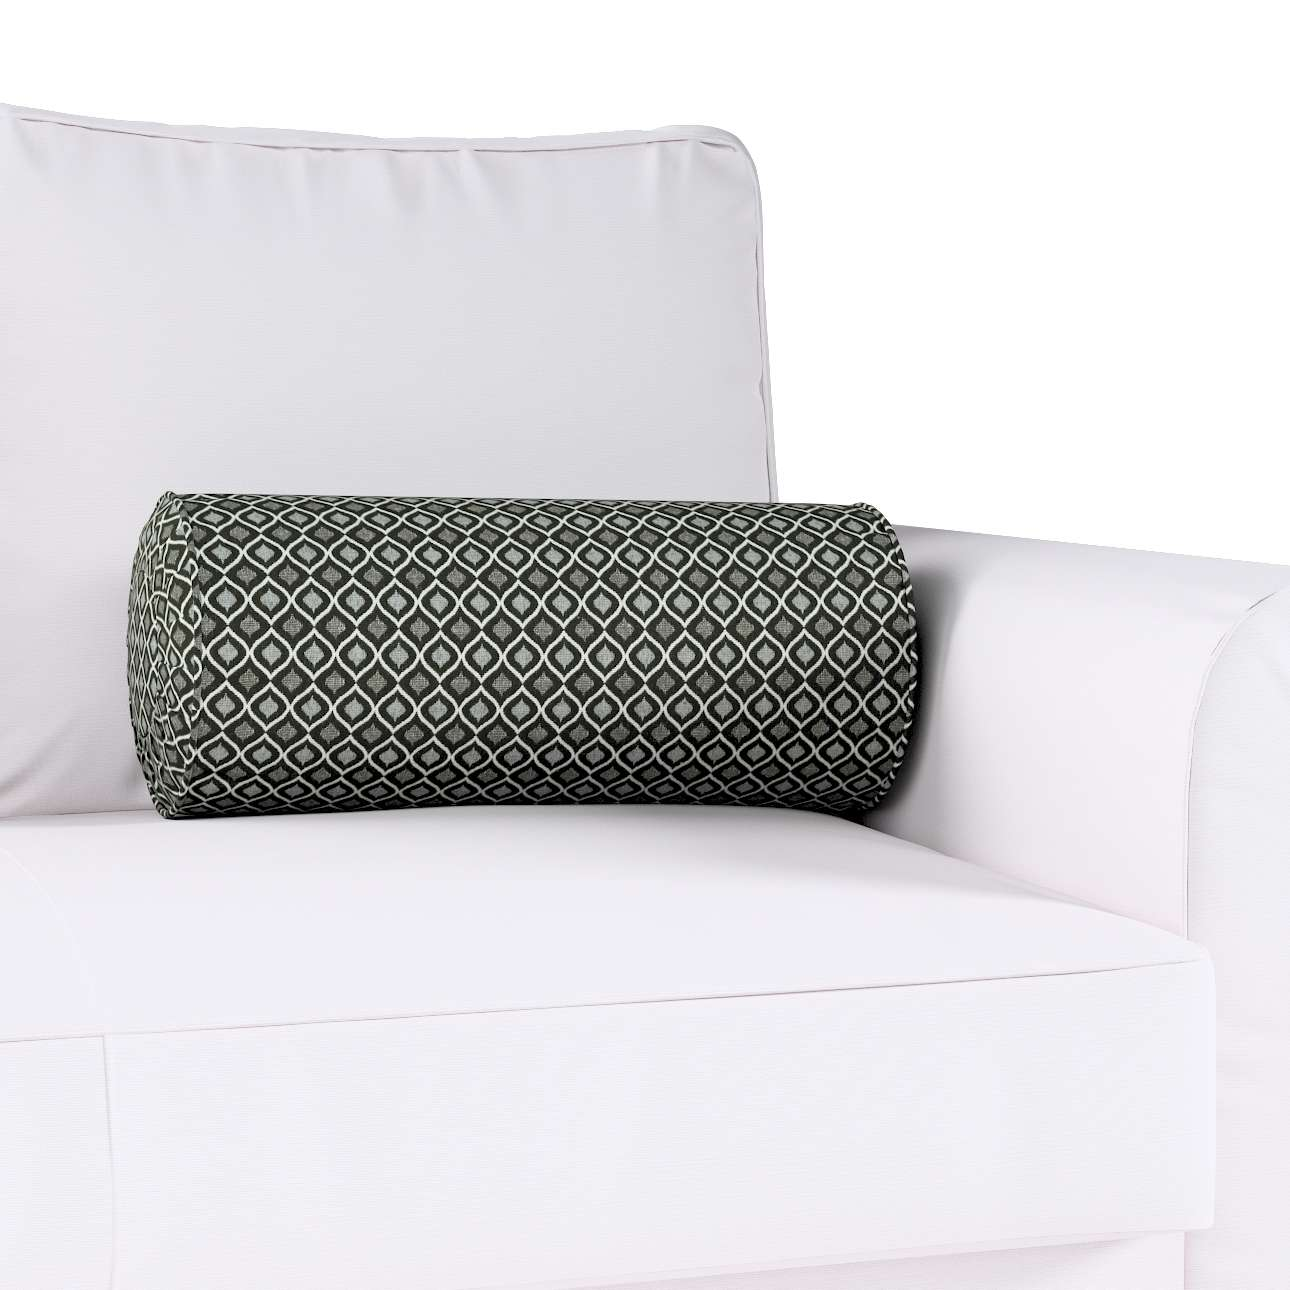 Bolster cushion with pleats in collection Black & White, fabric: 142-86